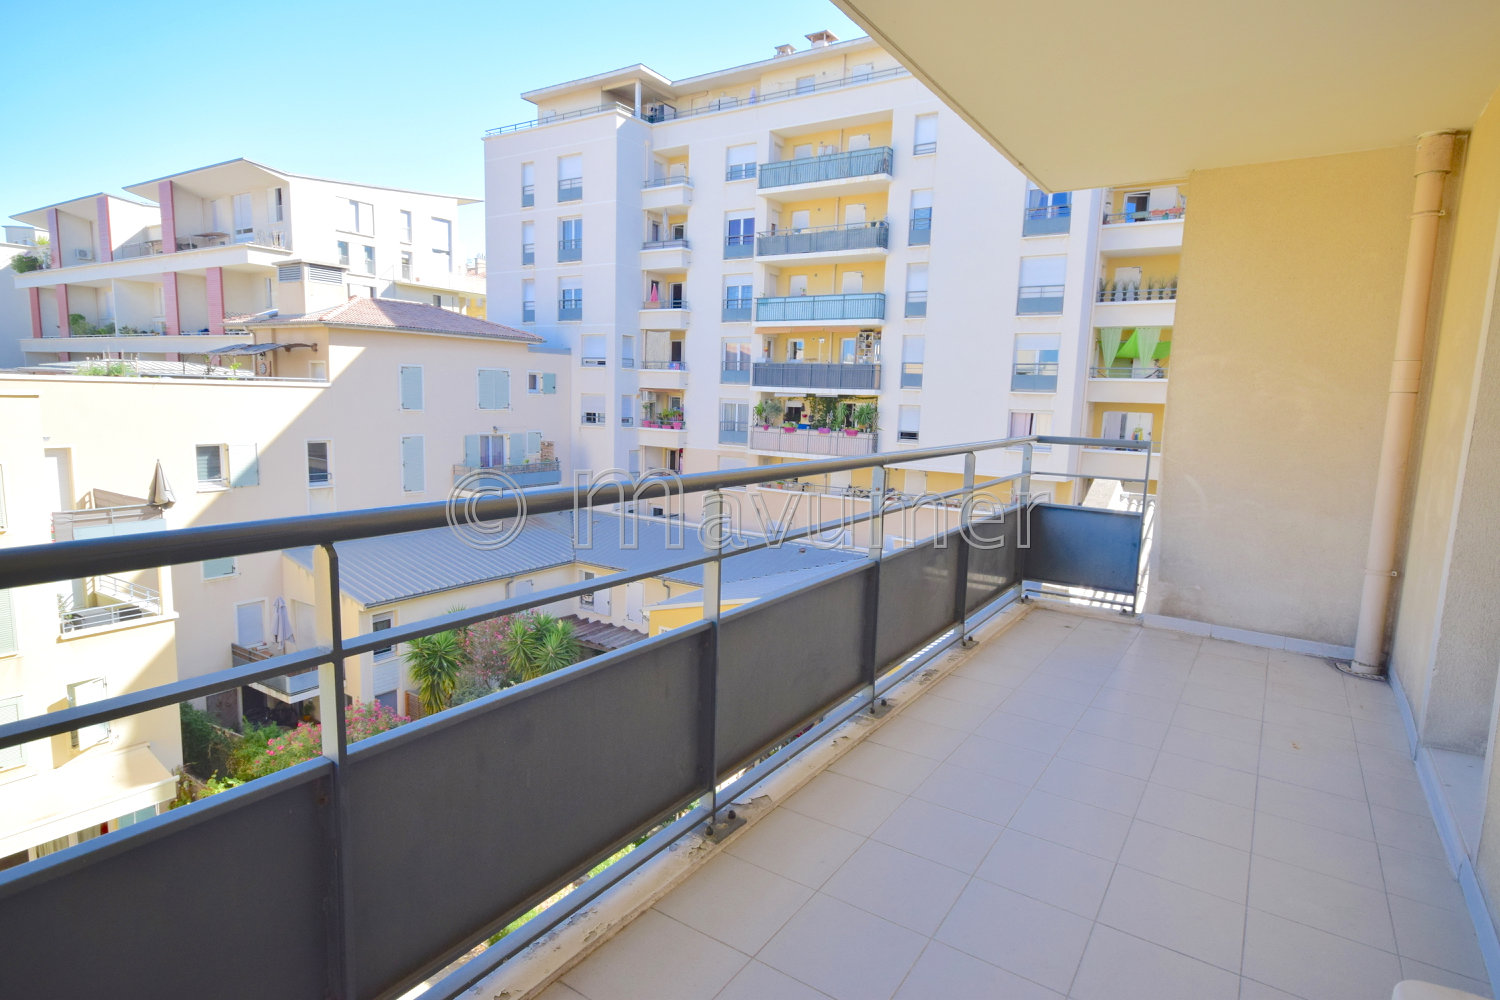 Sale Apartment - Marseille 2ème La Joliette